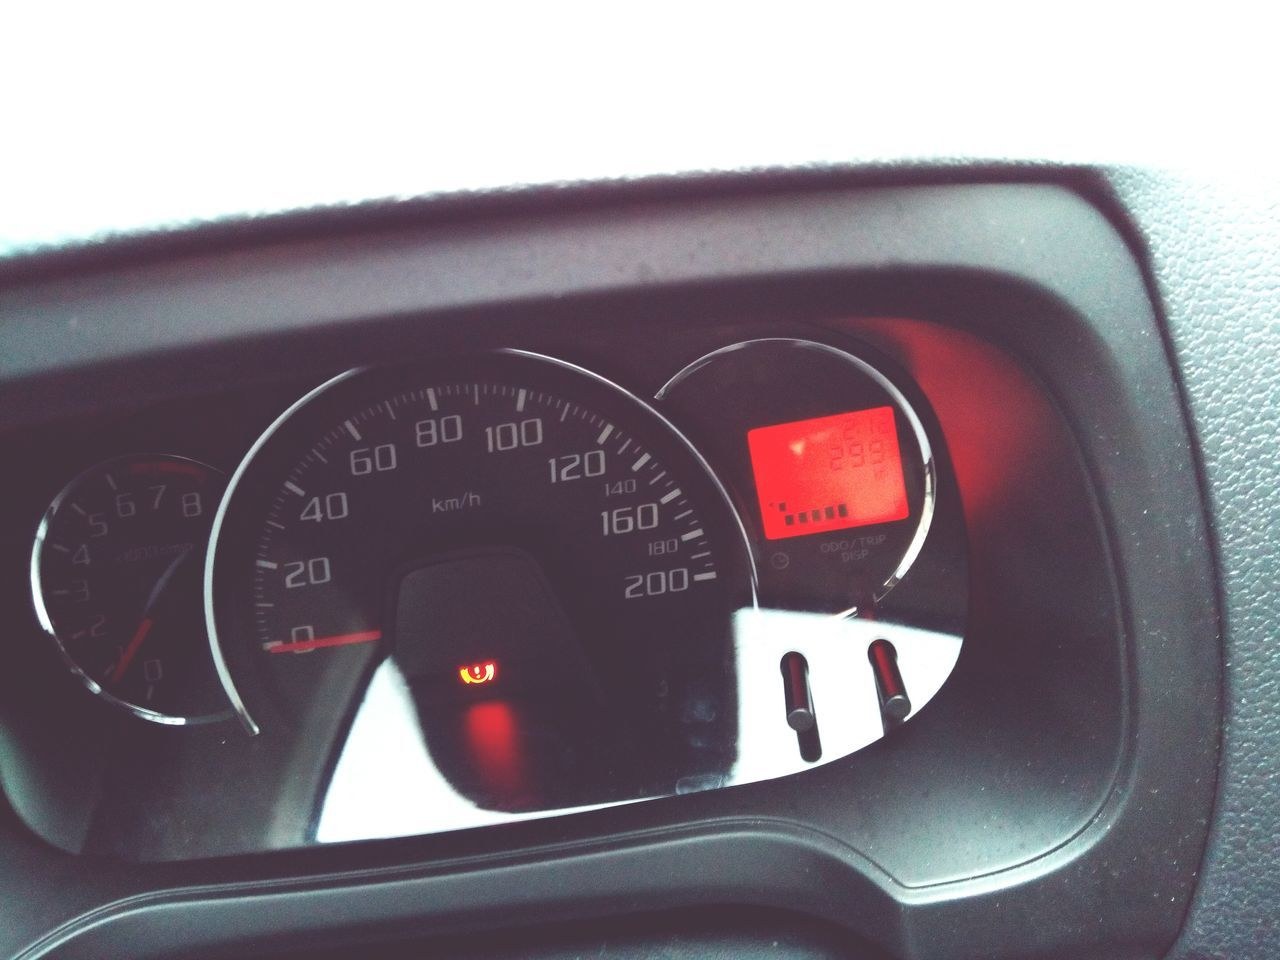 Car Interior Dashboard Vehicle Interior Speedometer Transportation Number Red Meter - Instrument Of Measurement Speed Control Panel Car Gauge Mode Of Transport